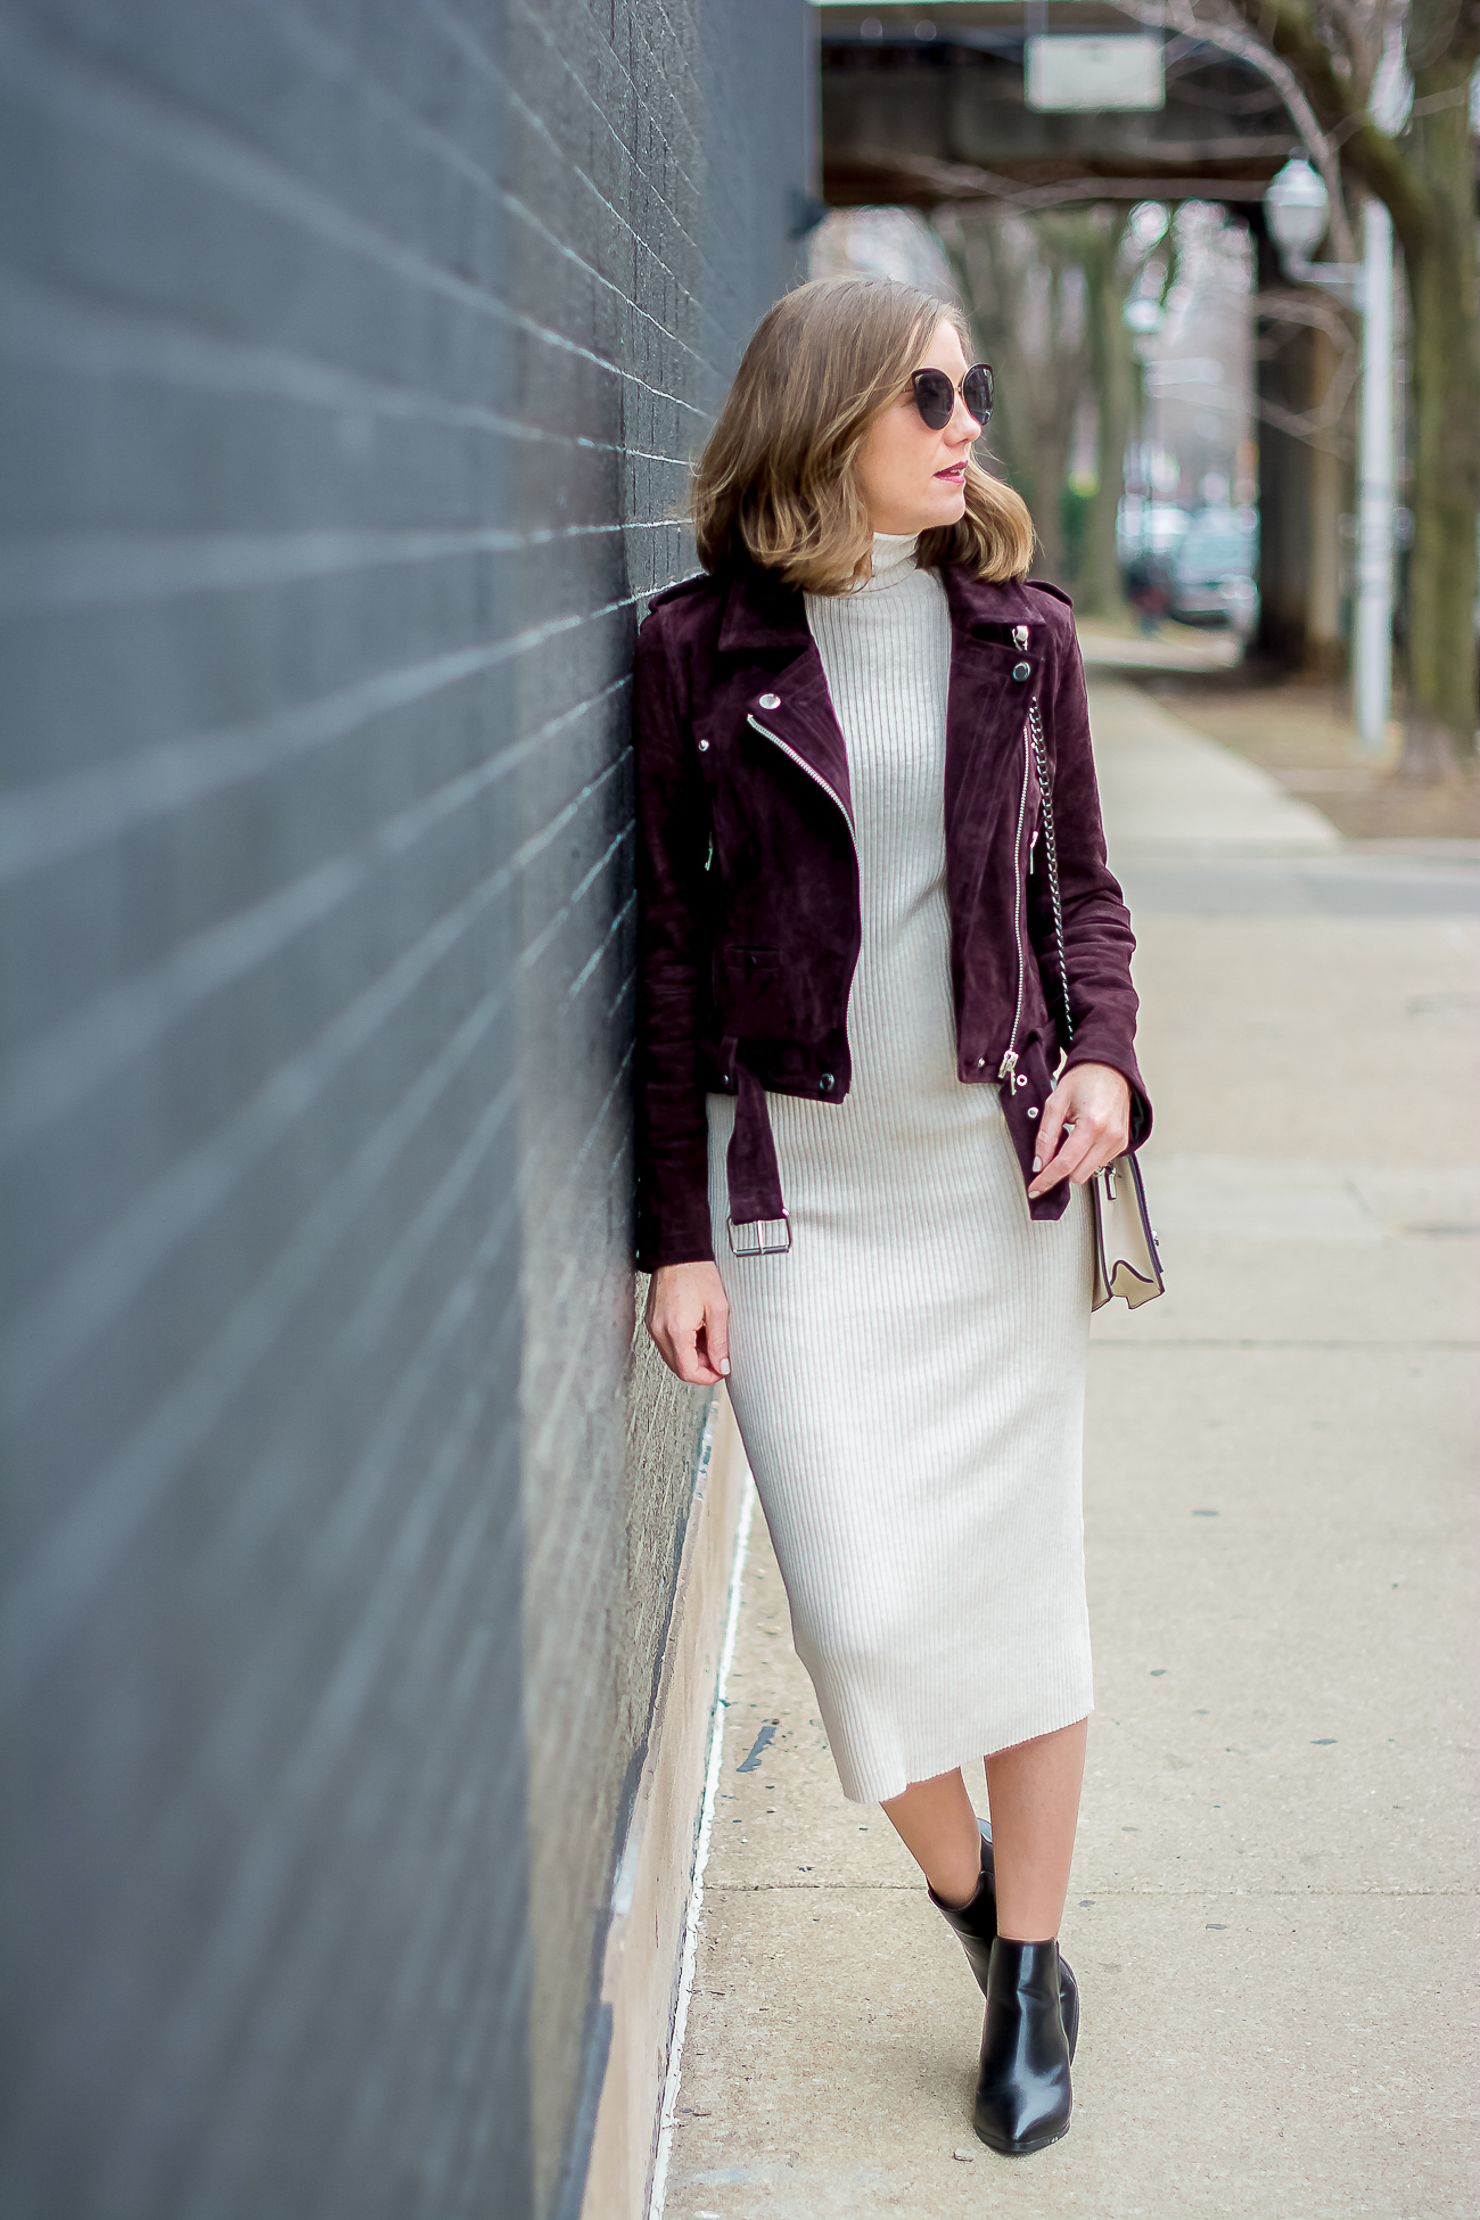 A Year in Review: My Favorite Outfits of 2016, styling a bodycon midi dress for any age